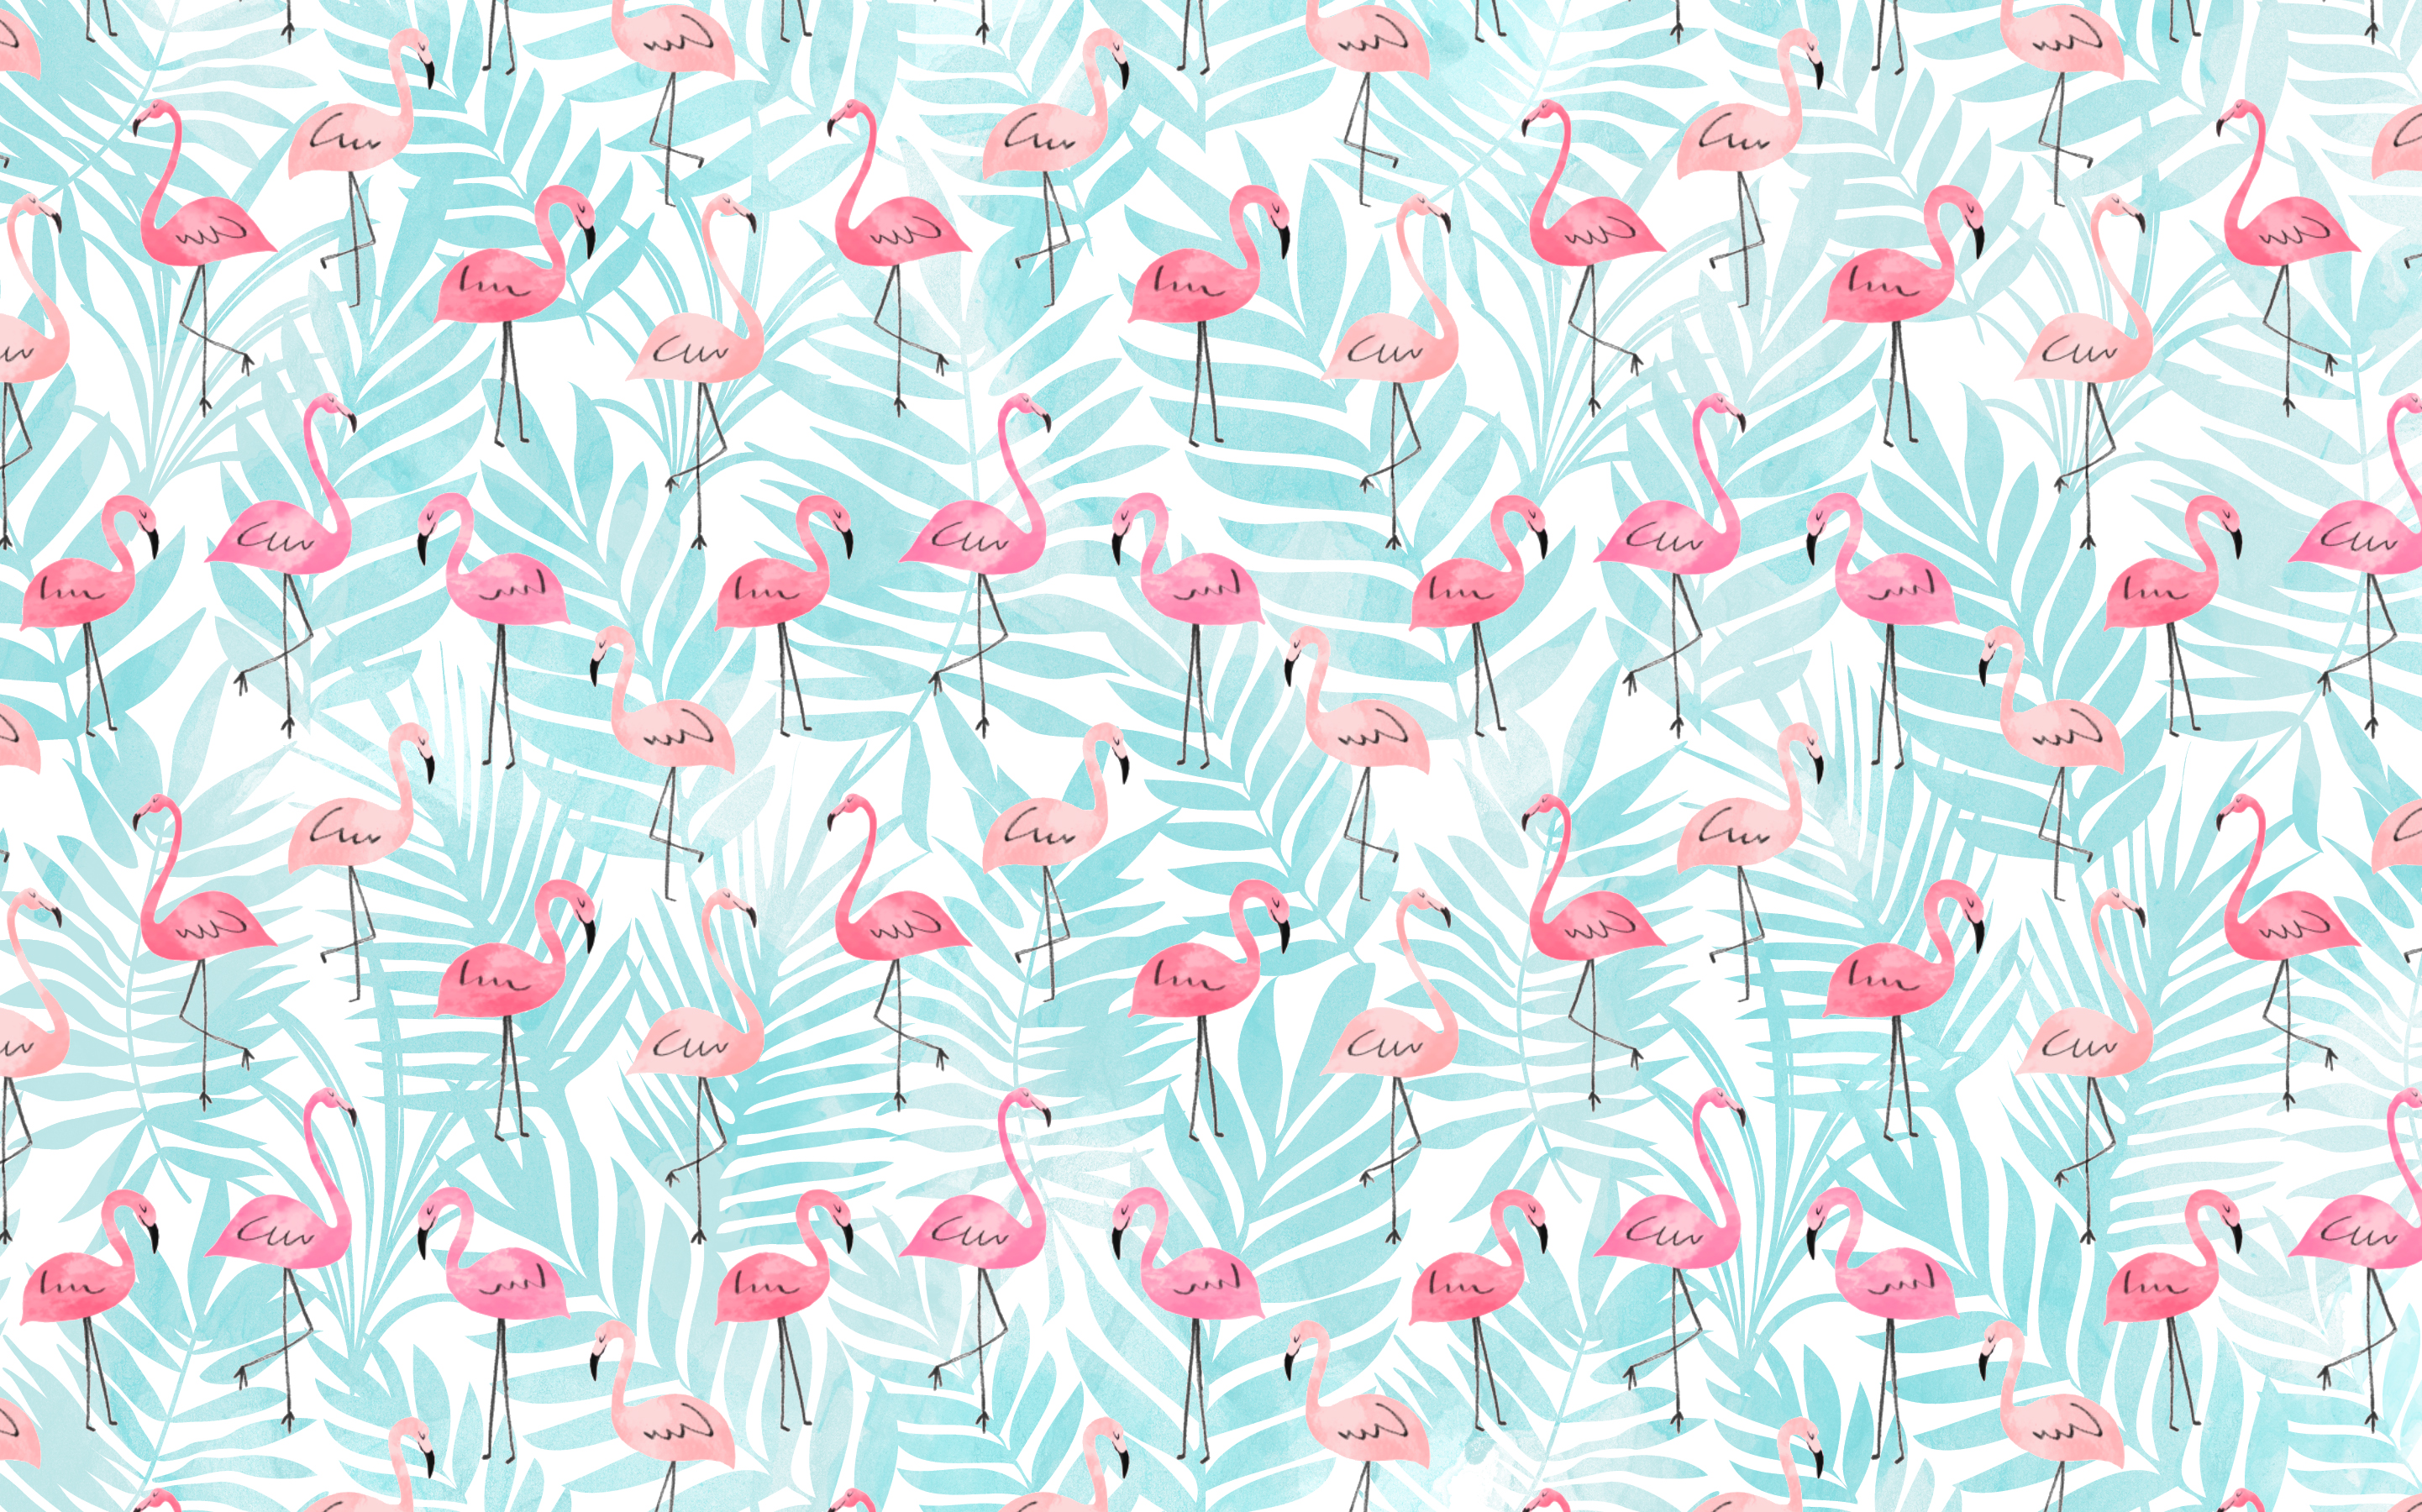 Flamingo wallpaper mellemimijolie for Image fond ecran ordinateur